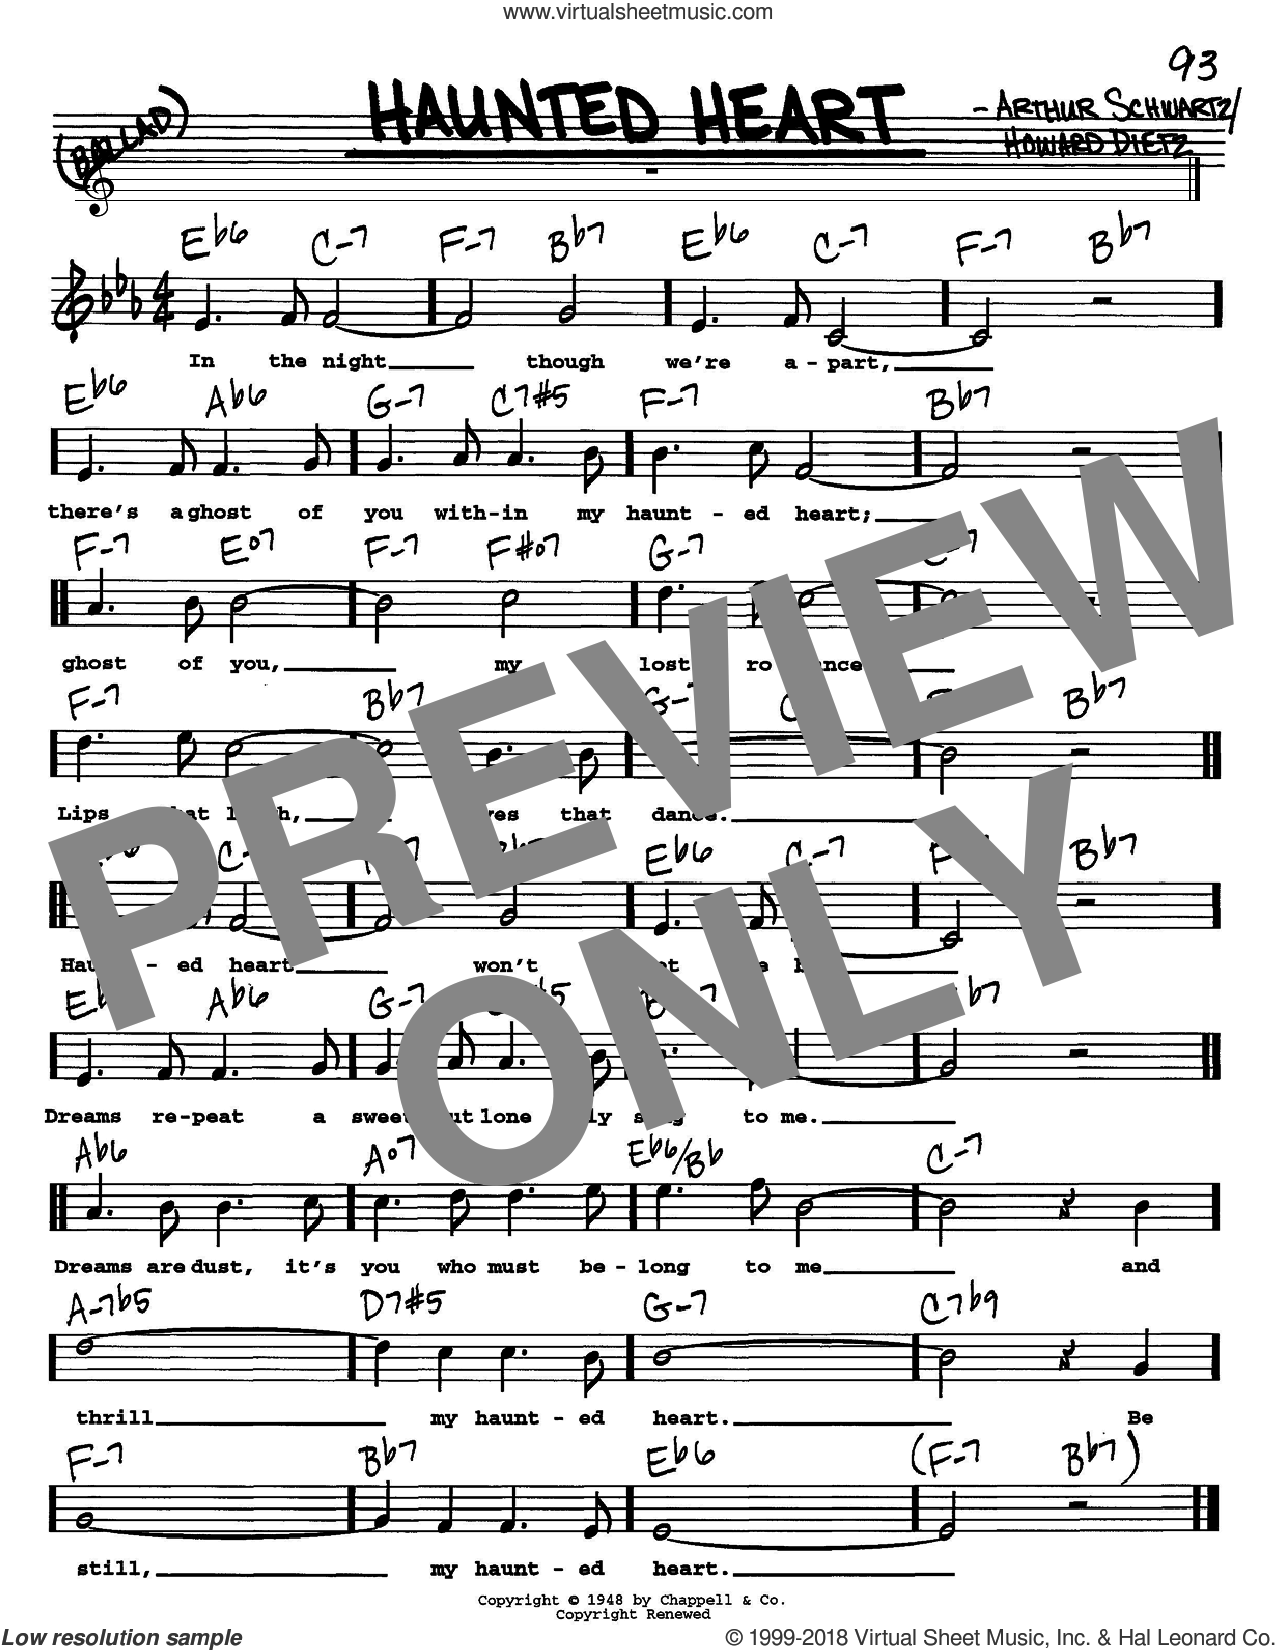 Haunted Heart sheet music for voice and other instruments (Vocal Volume 2) by Frank Sinatra, Arthur Schwartz and Howard Dietz, intermediate. Score Image Preview.